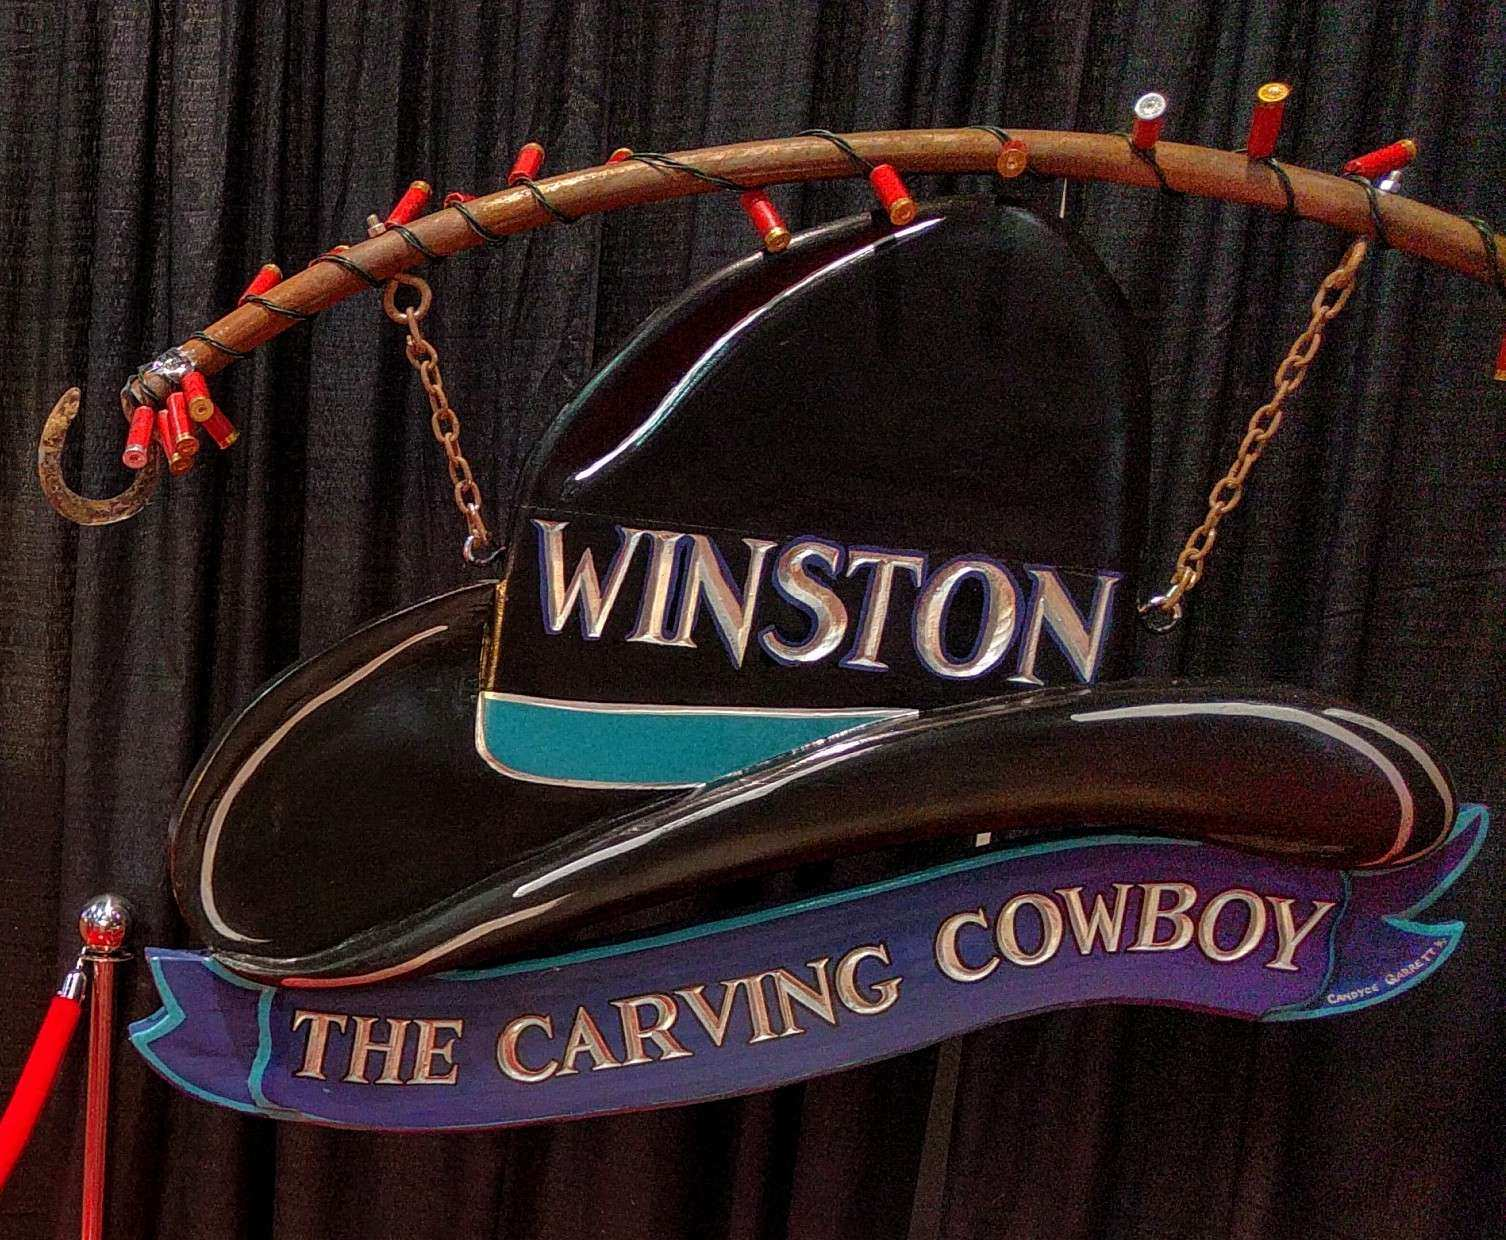 be sure and stop by winstons booth at the east door entrance of the south hall in the las vegas convention center they have in addition a 55 inch vertical